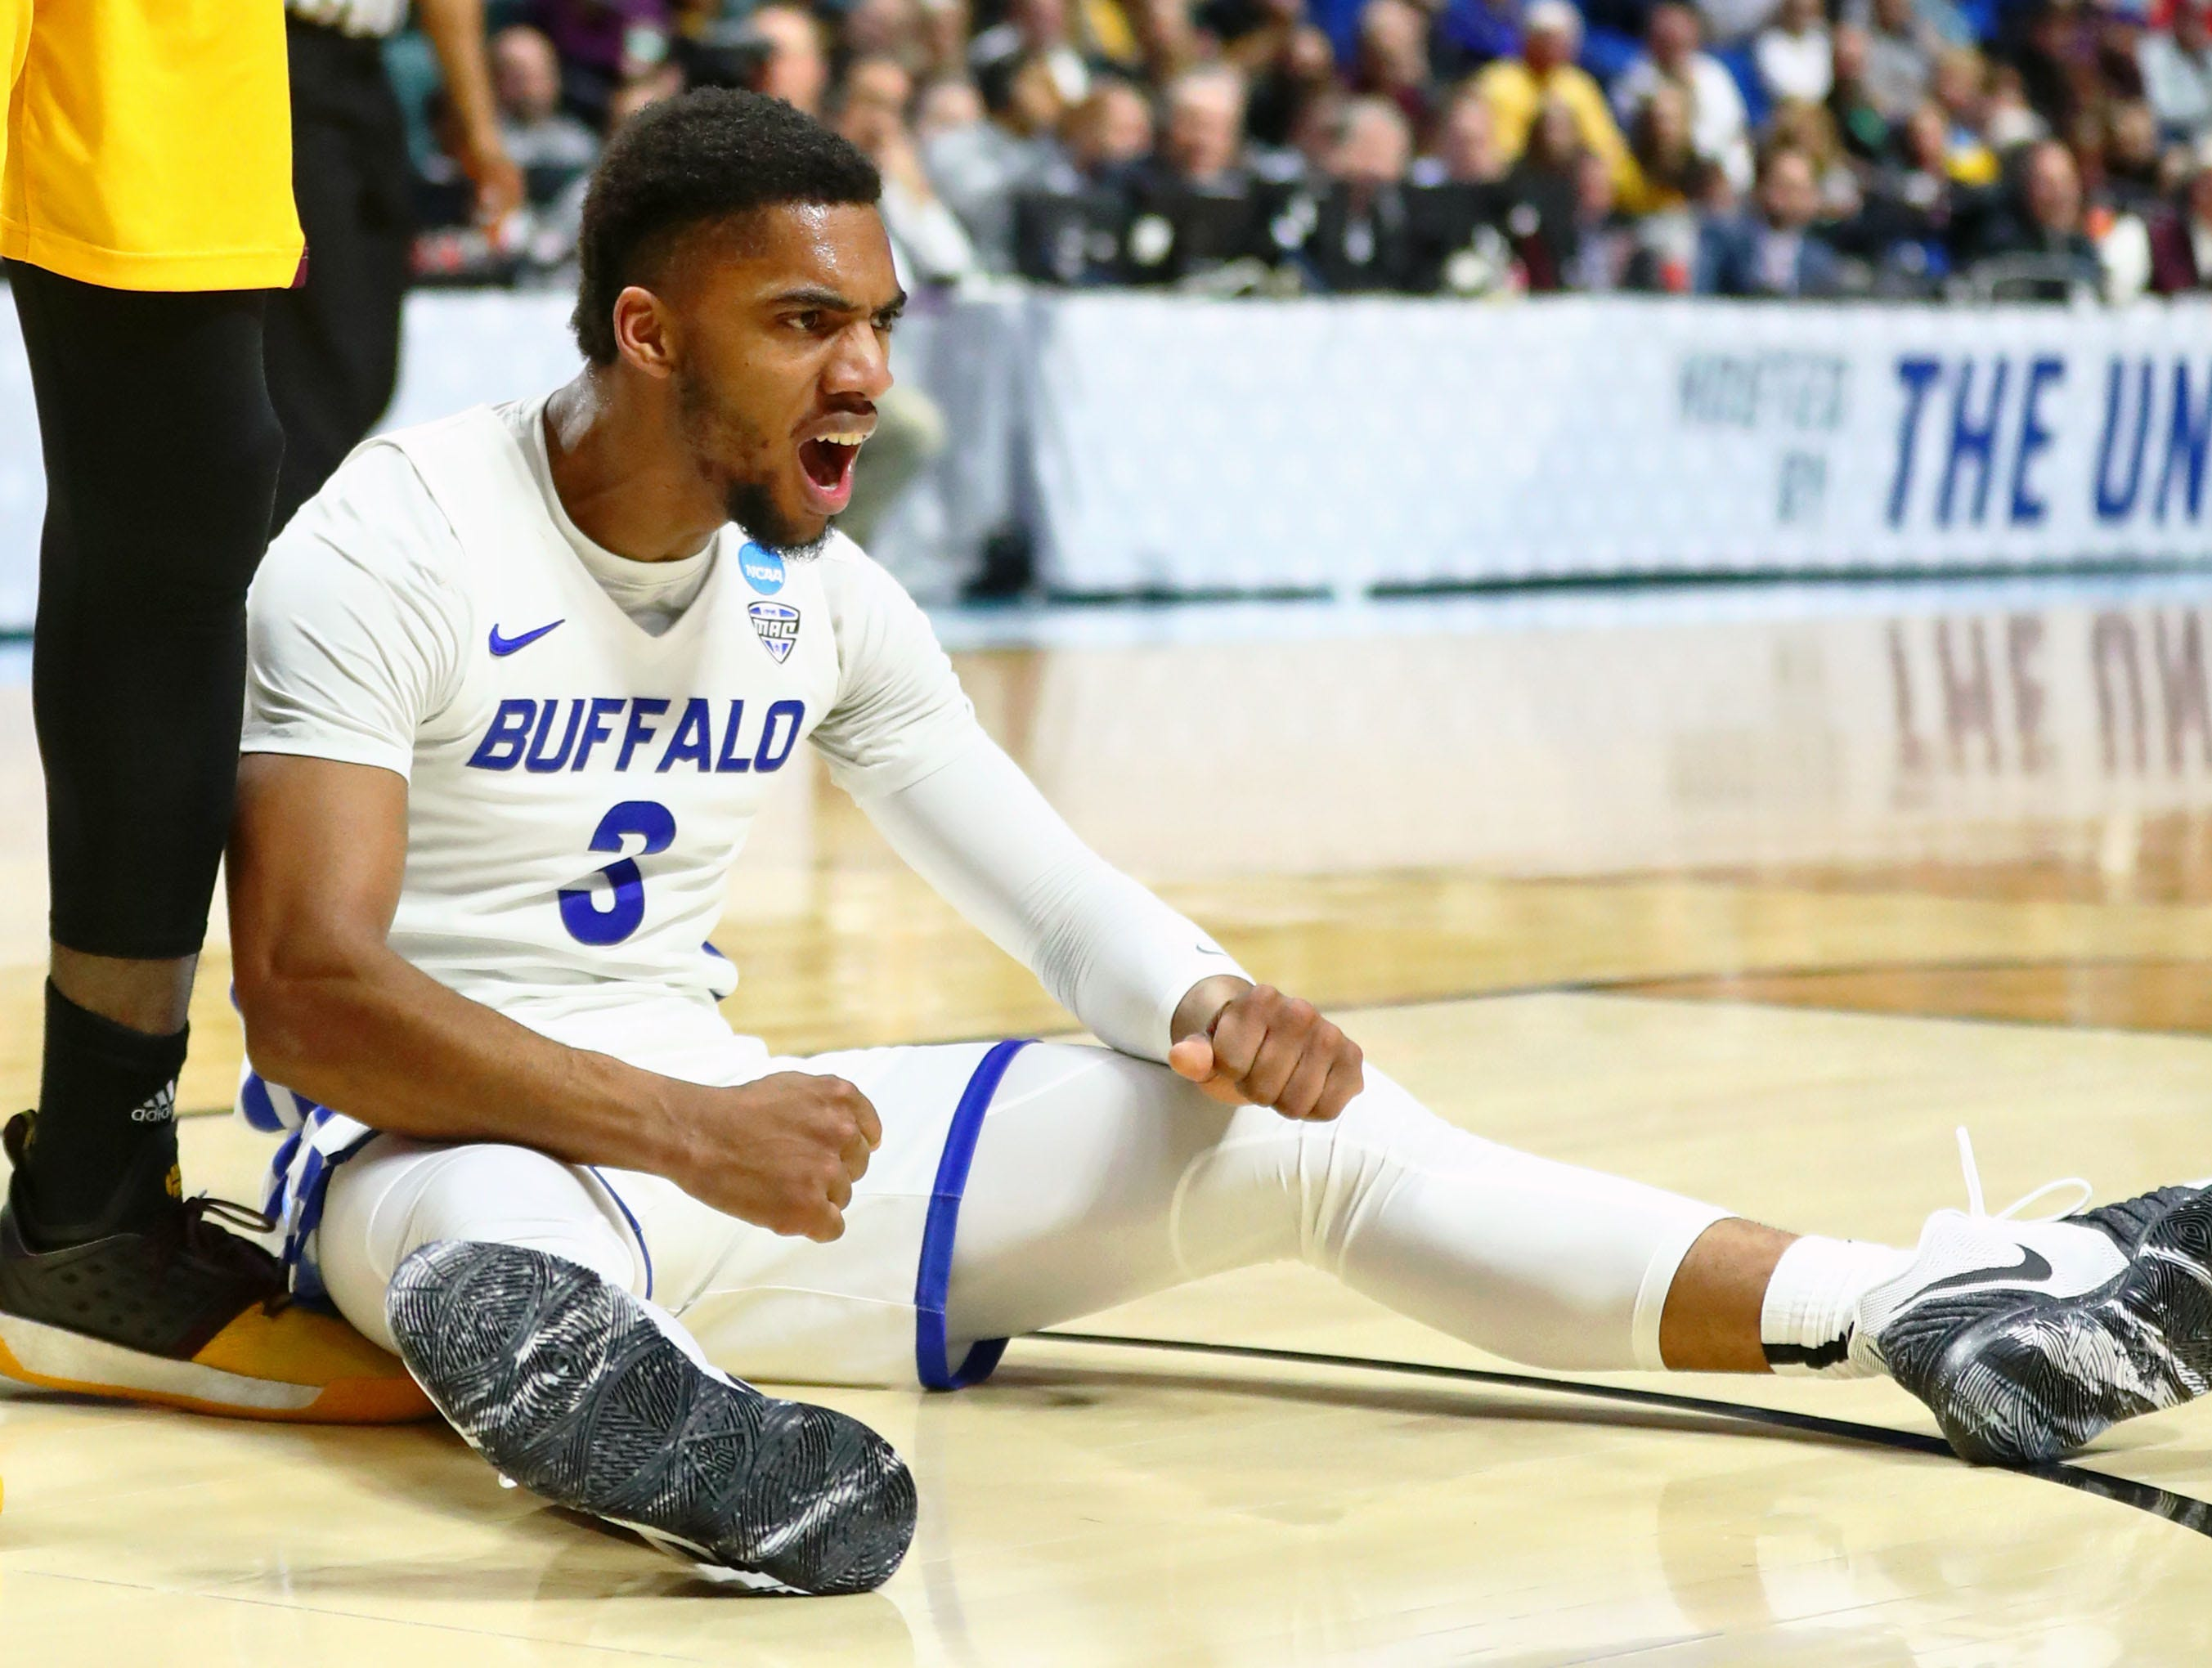 Mar 22, 2019; Tulsa, OK, USA; Buffalo Bulls guard Jayvon Graves (3) reacts after being fouled during the second half of their game against the Arizona State Sun Devils in the first round of the 2019 NCAA Tournament at BOK Center. Mandatory Credit: Mark J. Rebilas-USA TODAY Sports